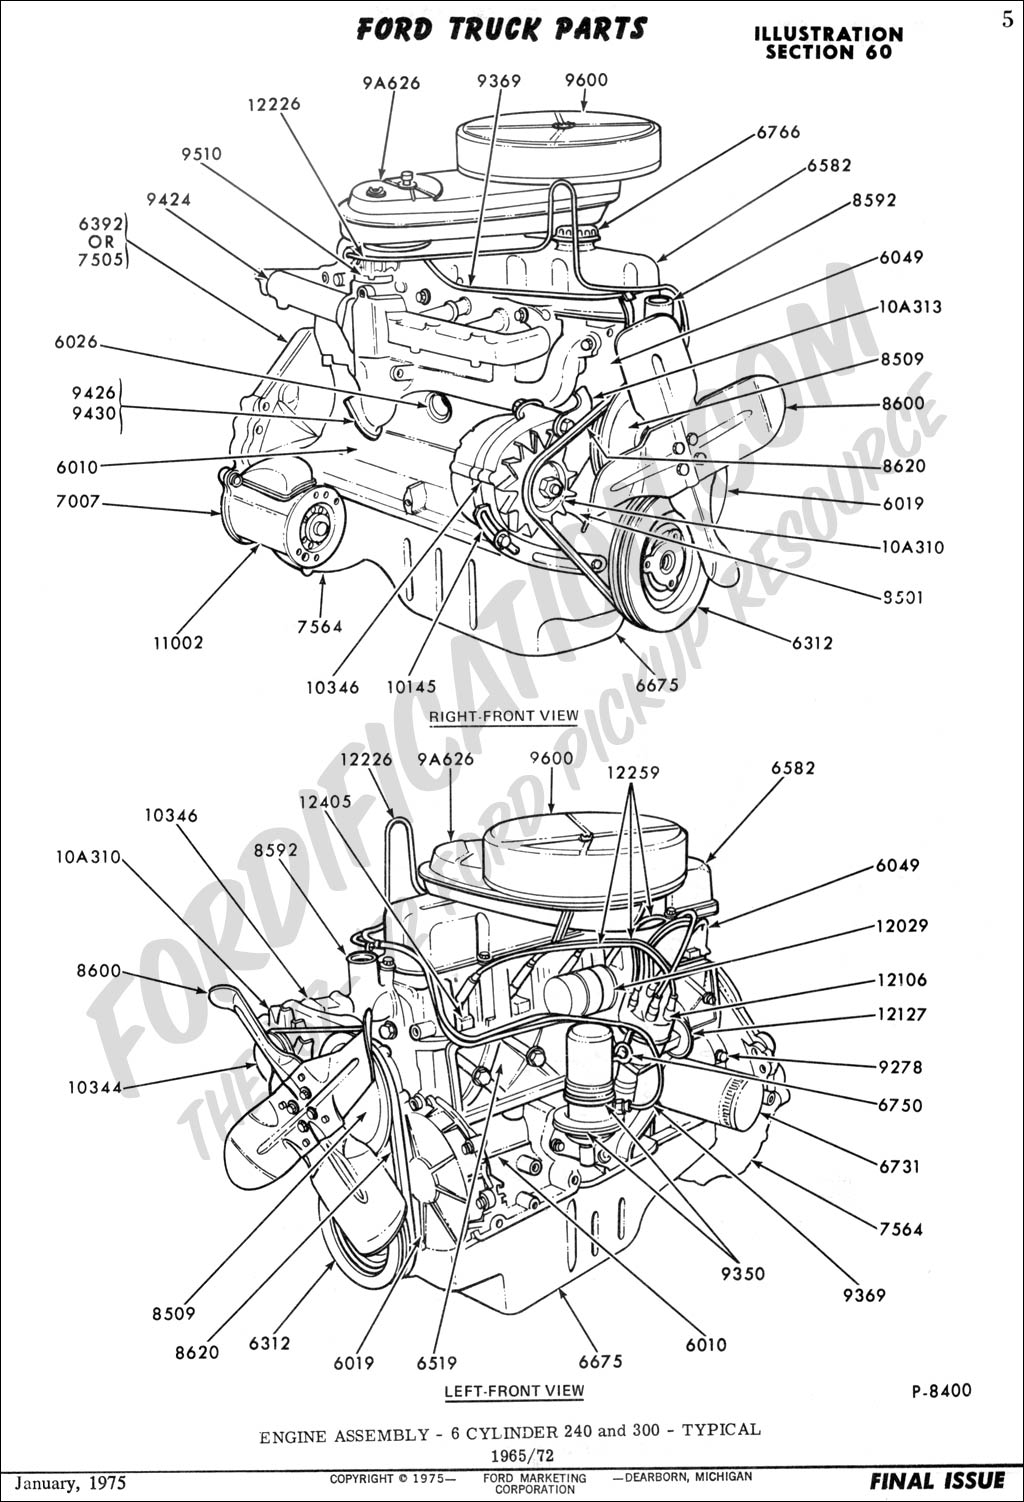 1984 Ford Wiring Schematic Library 01 F150 Alternator Diagram Truck Technical Drawings And Schematics Section E Ignition